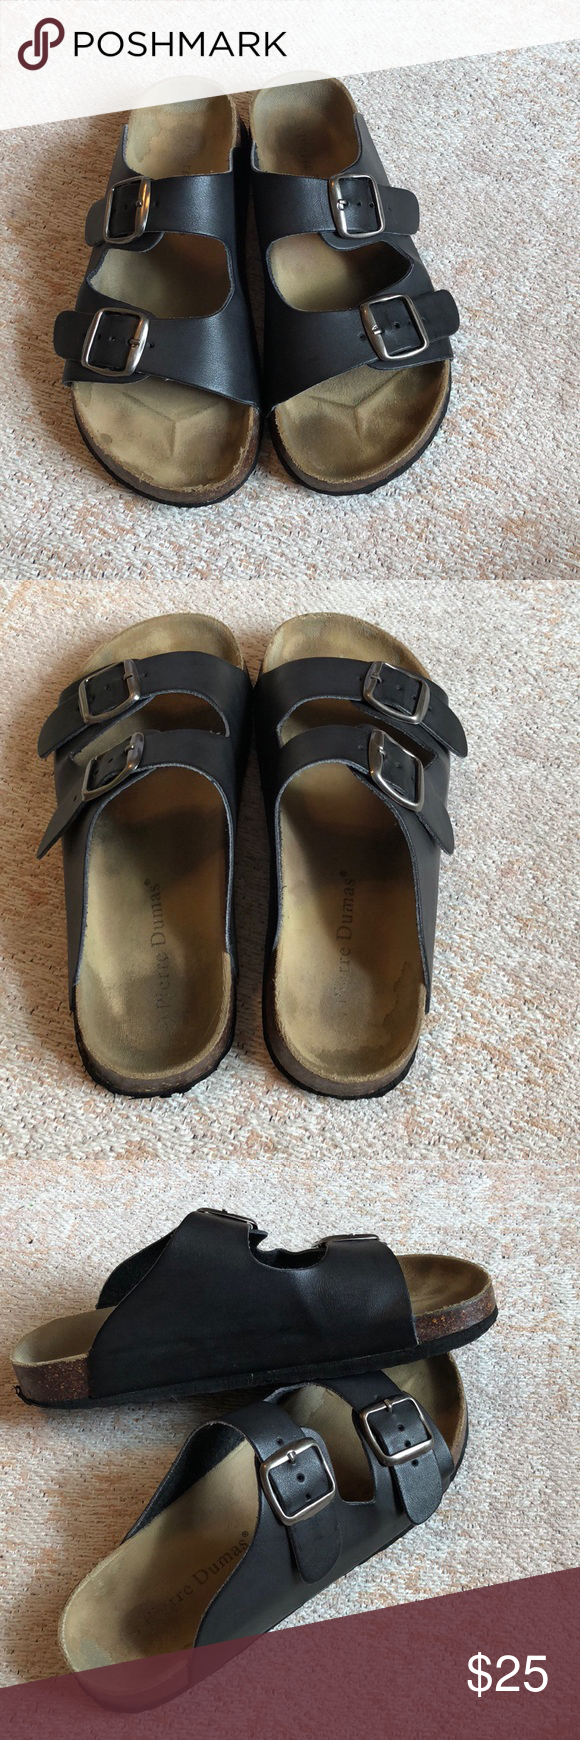 3bf4edd1a798 I bought them off depop not paying attention and thought they were real  burks! I would have kept them because they are in good condition but they  ...